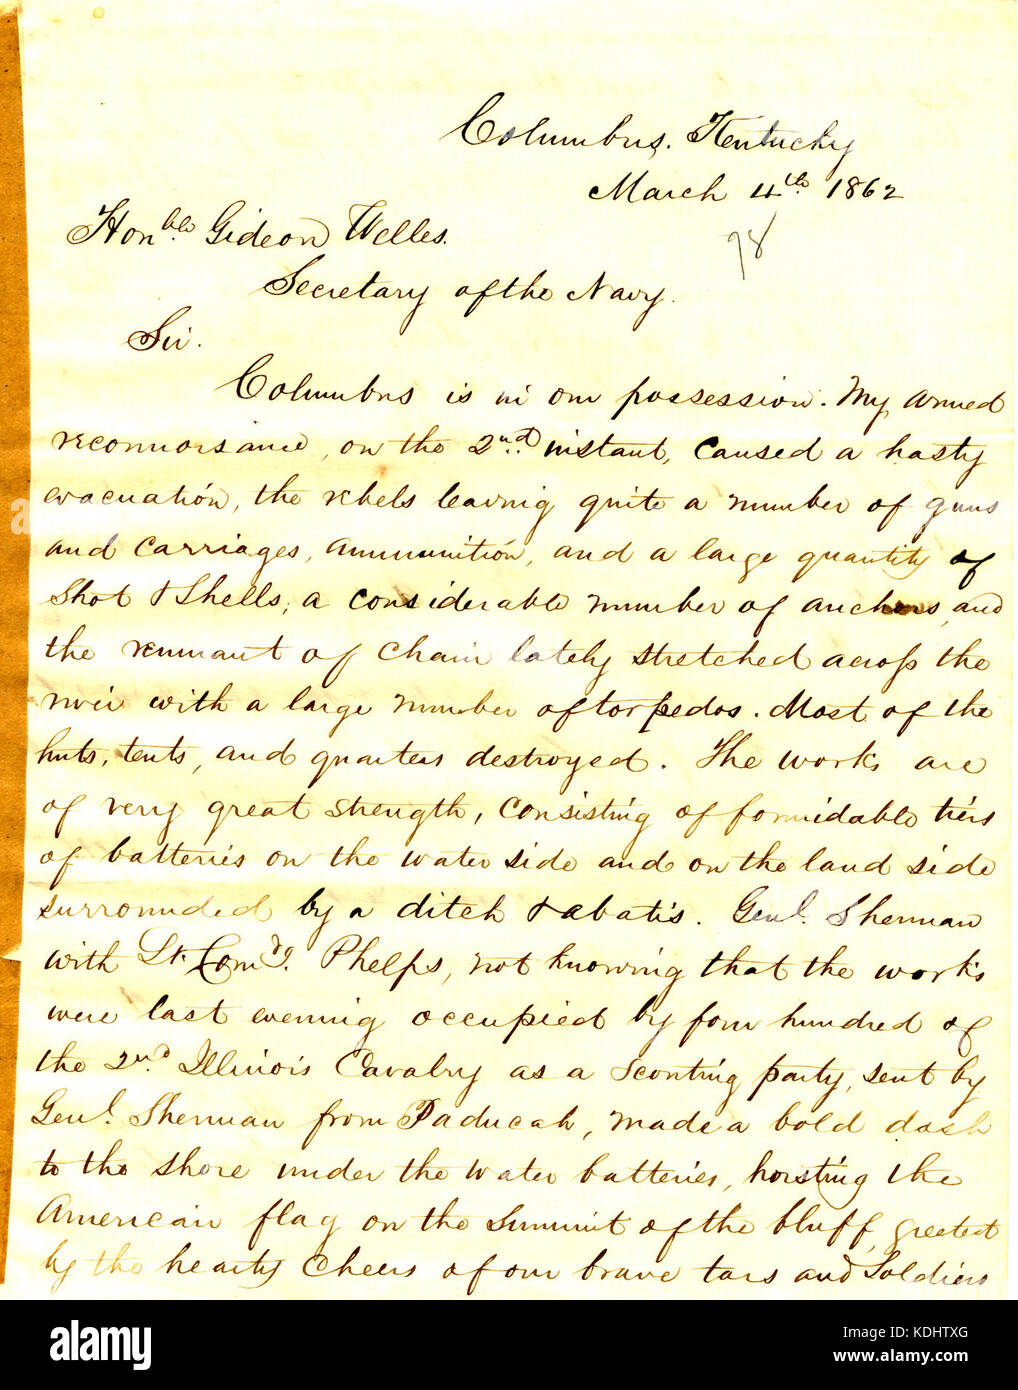 Letter from A. H. Foote, Columbus, Kentucky, to Gideon Welles, March 4, 1862 - Stock Image